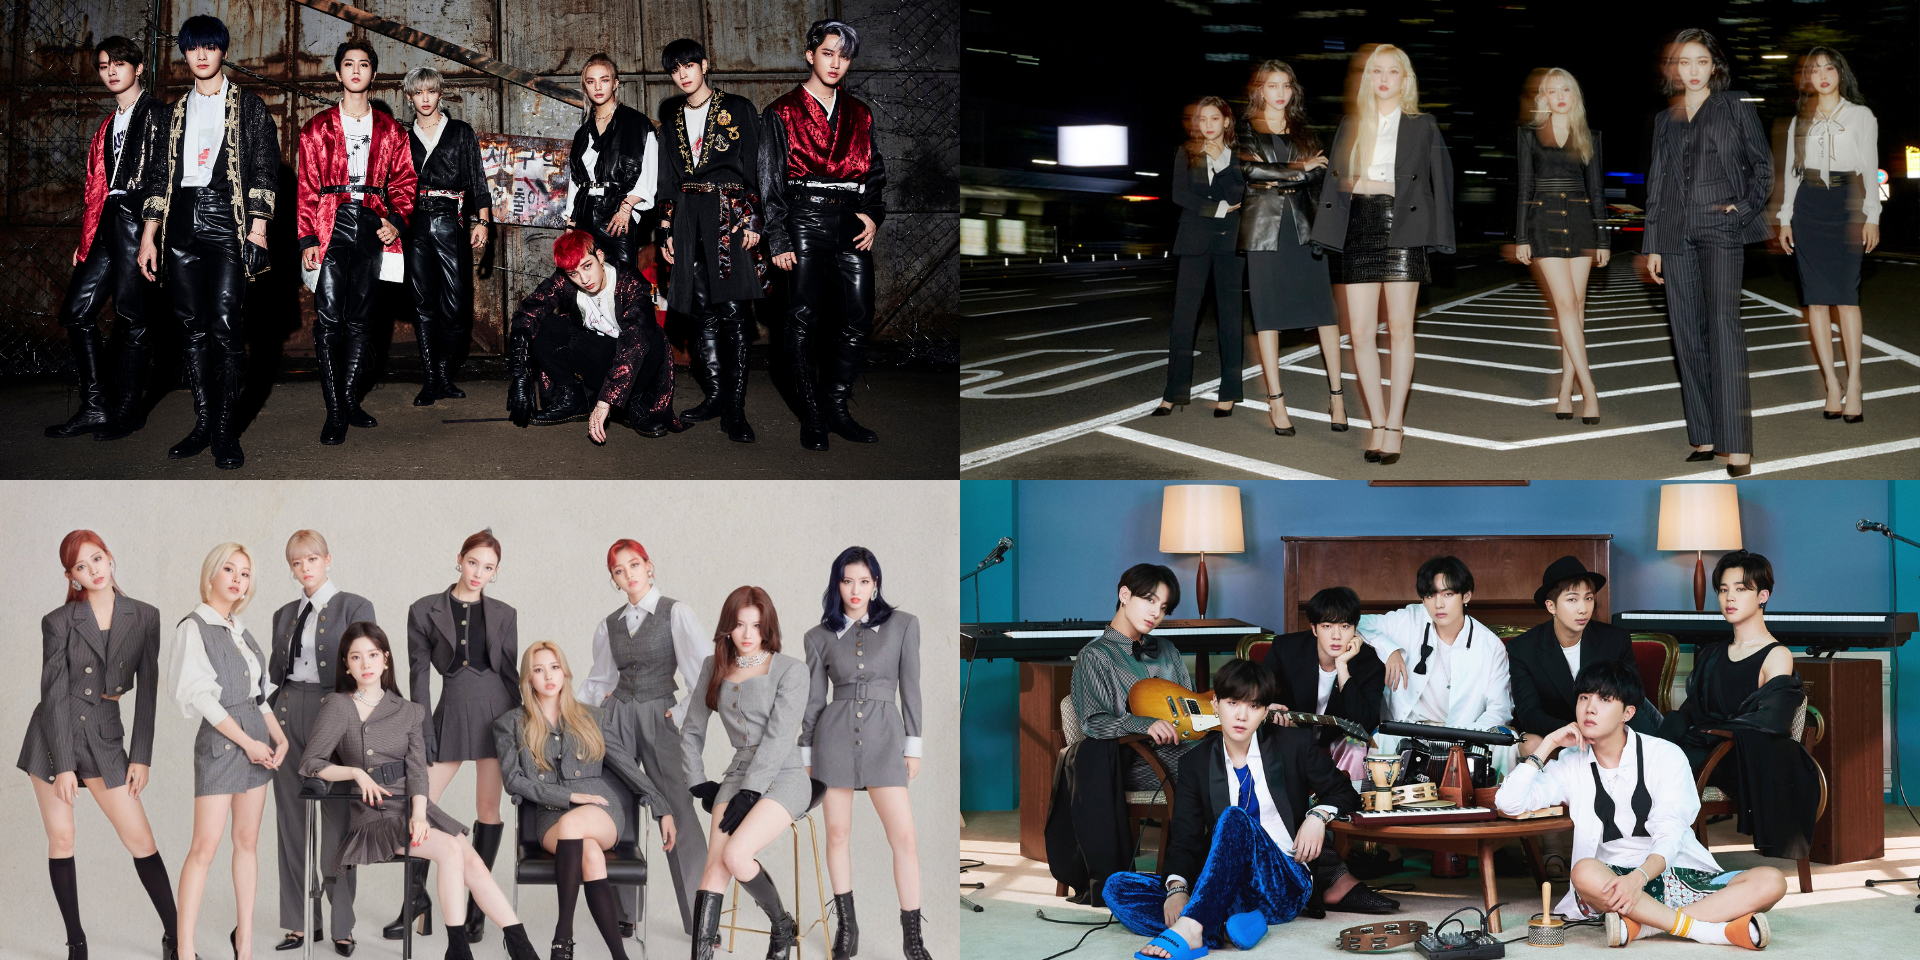 BTS, TWICE, Stray Kids, GFRIEND, and more to perform on 2020 SBS Gayo Daejeon in Daegu